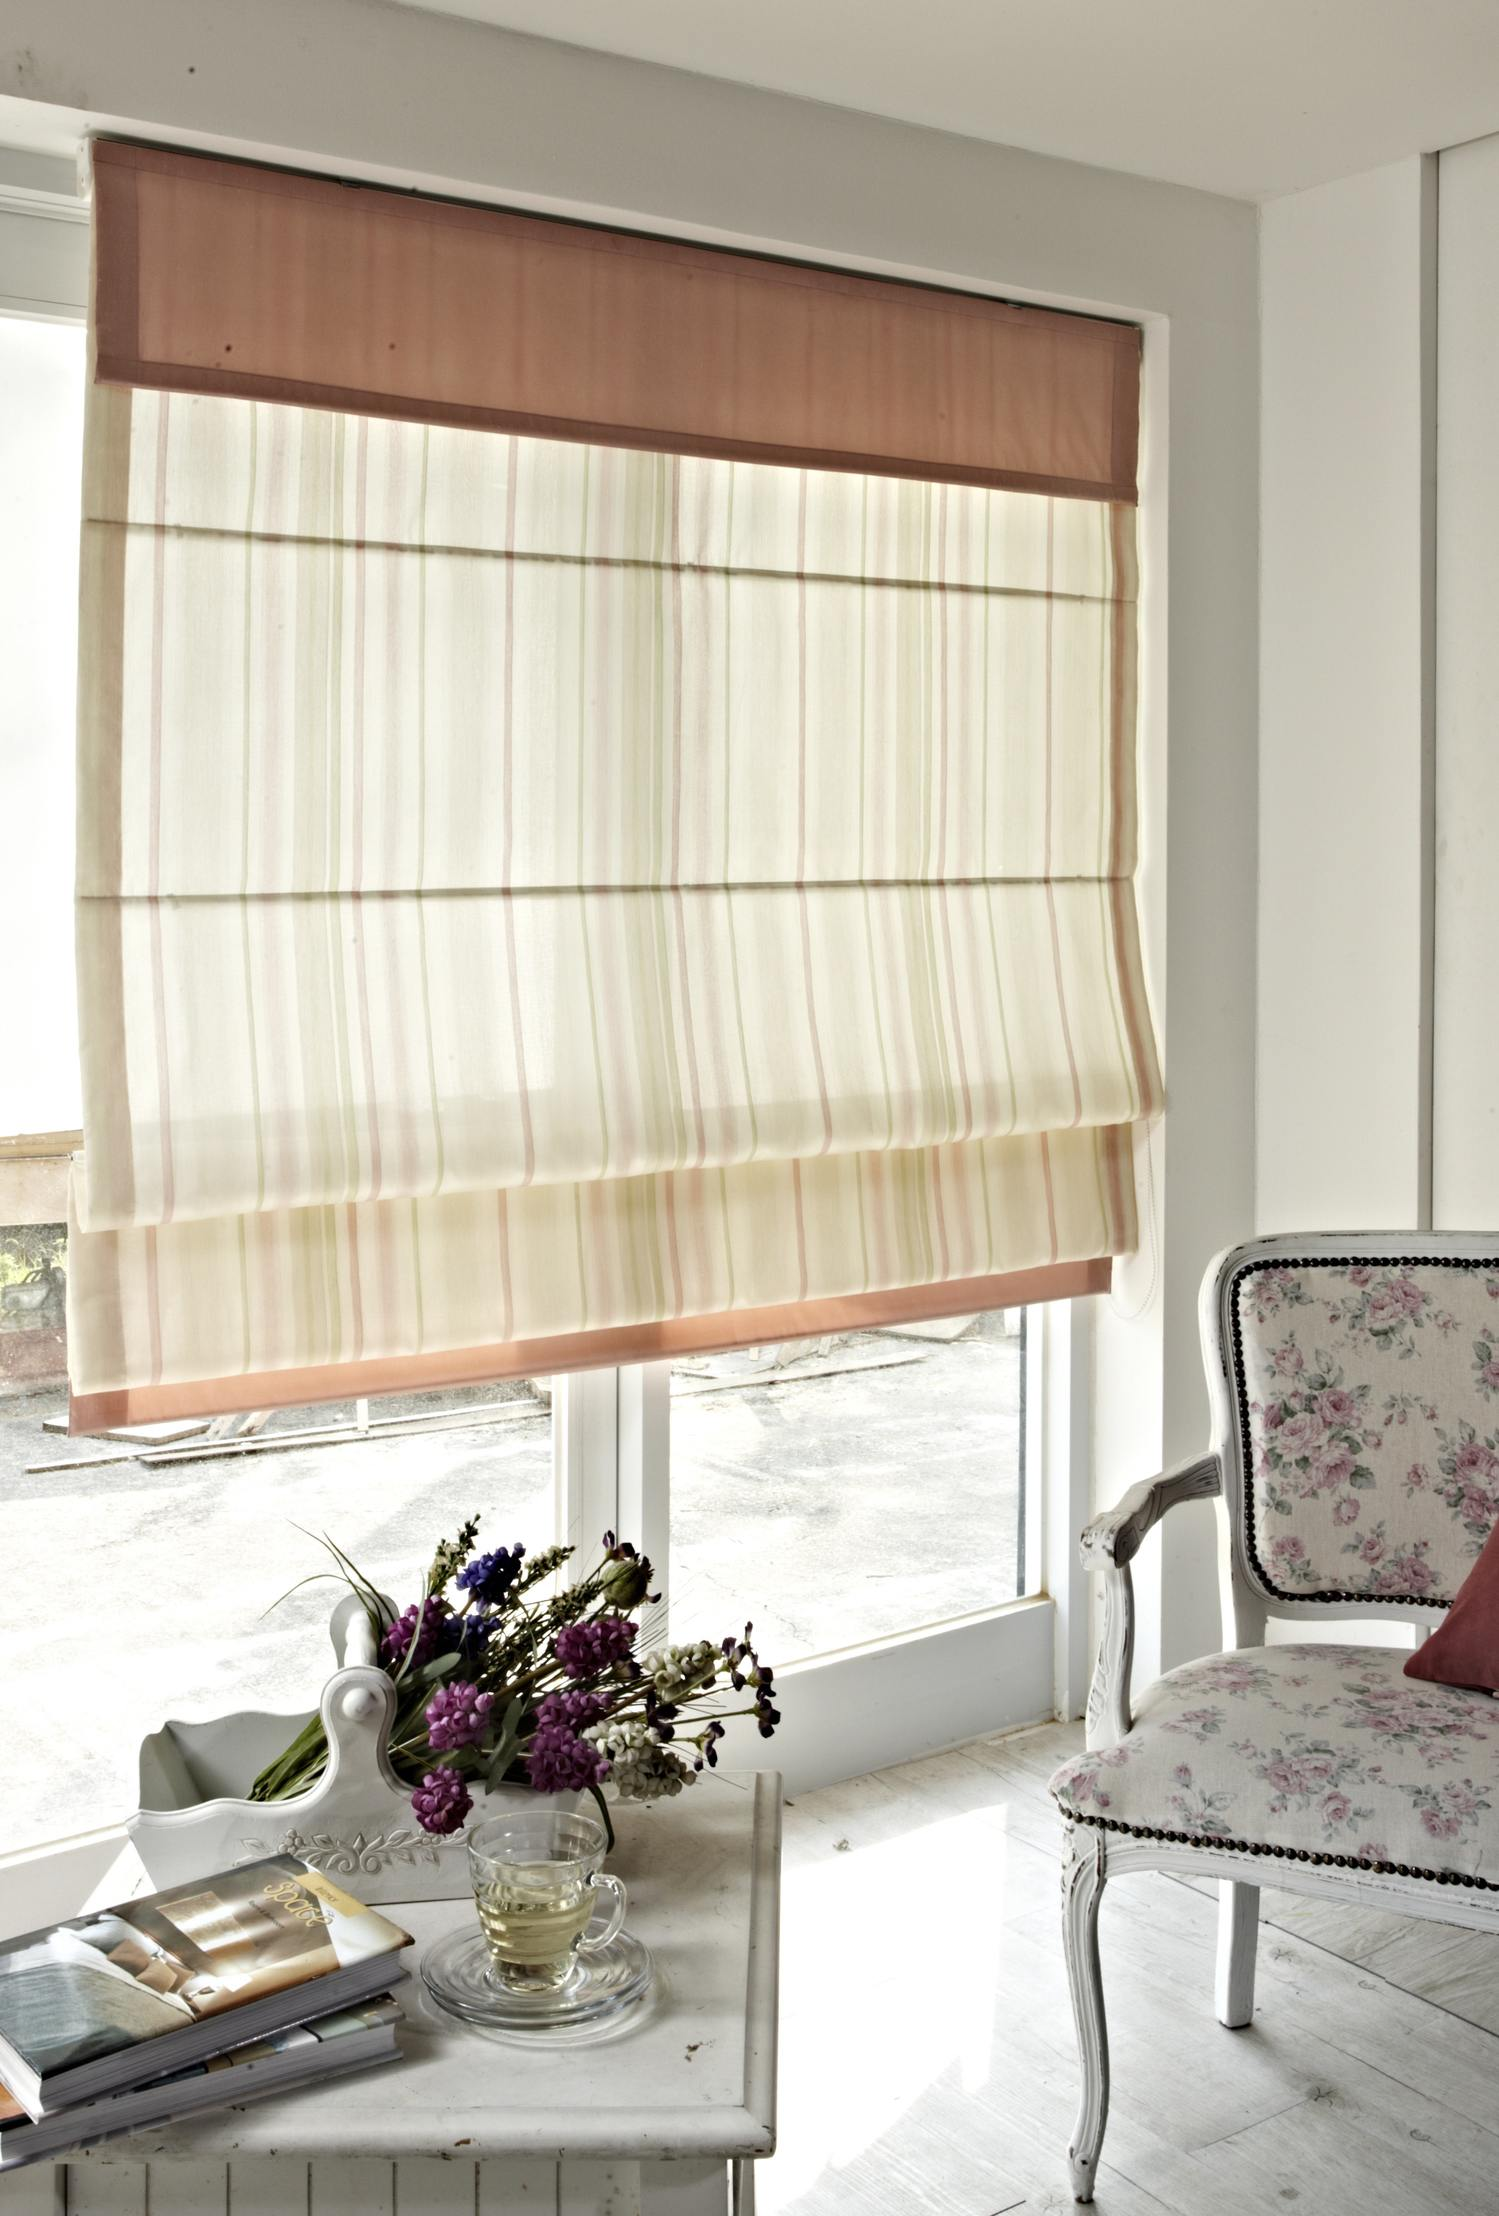 An image of a Roman blind in situ at a window.